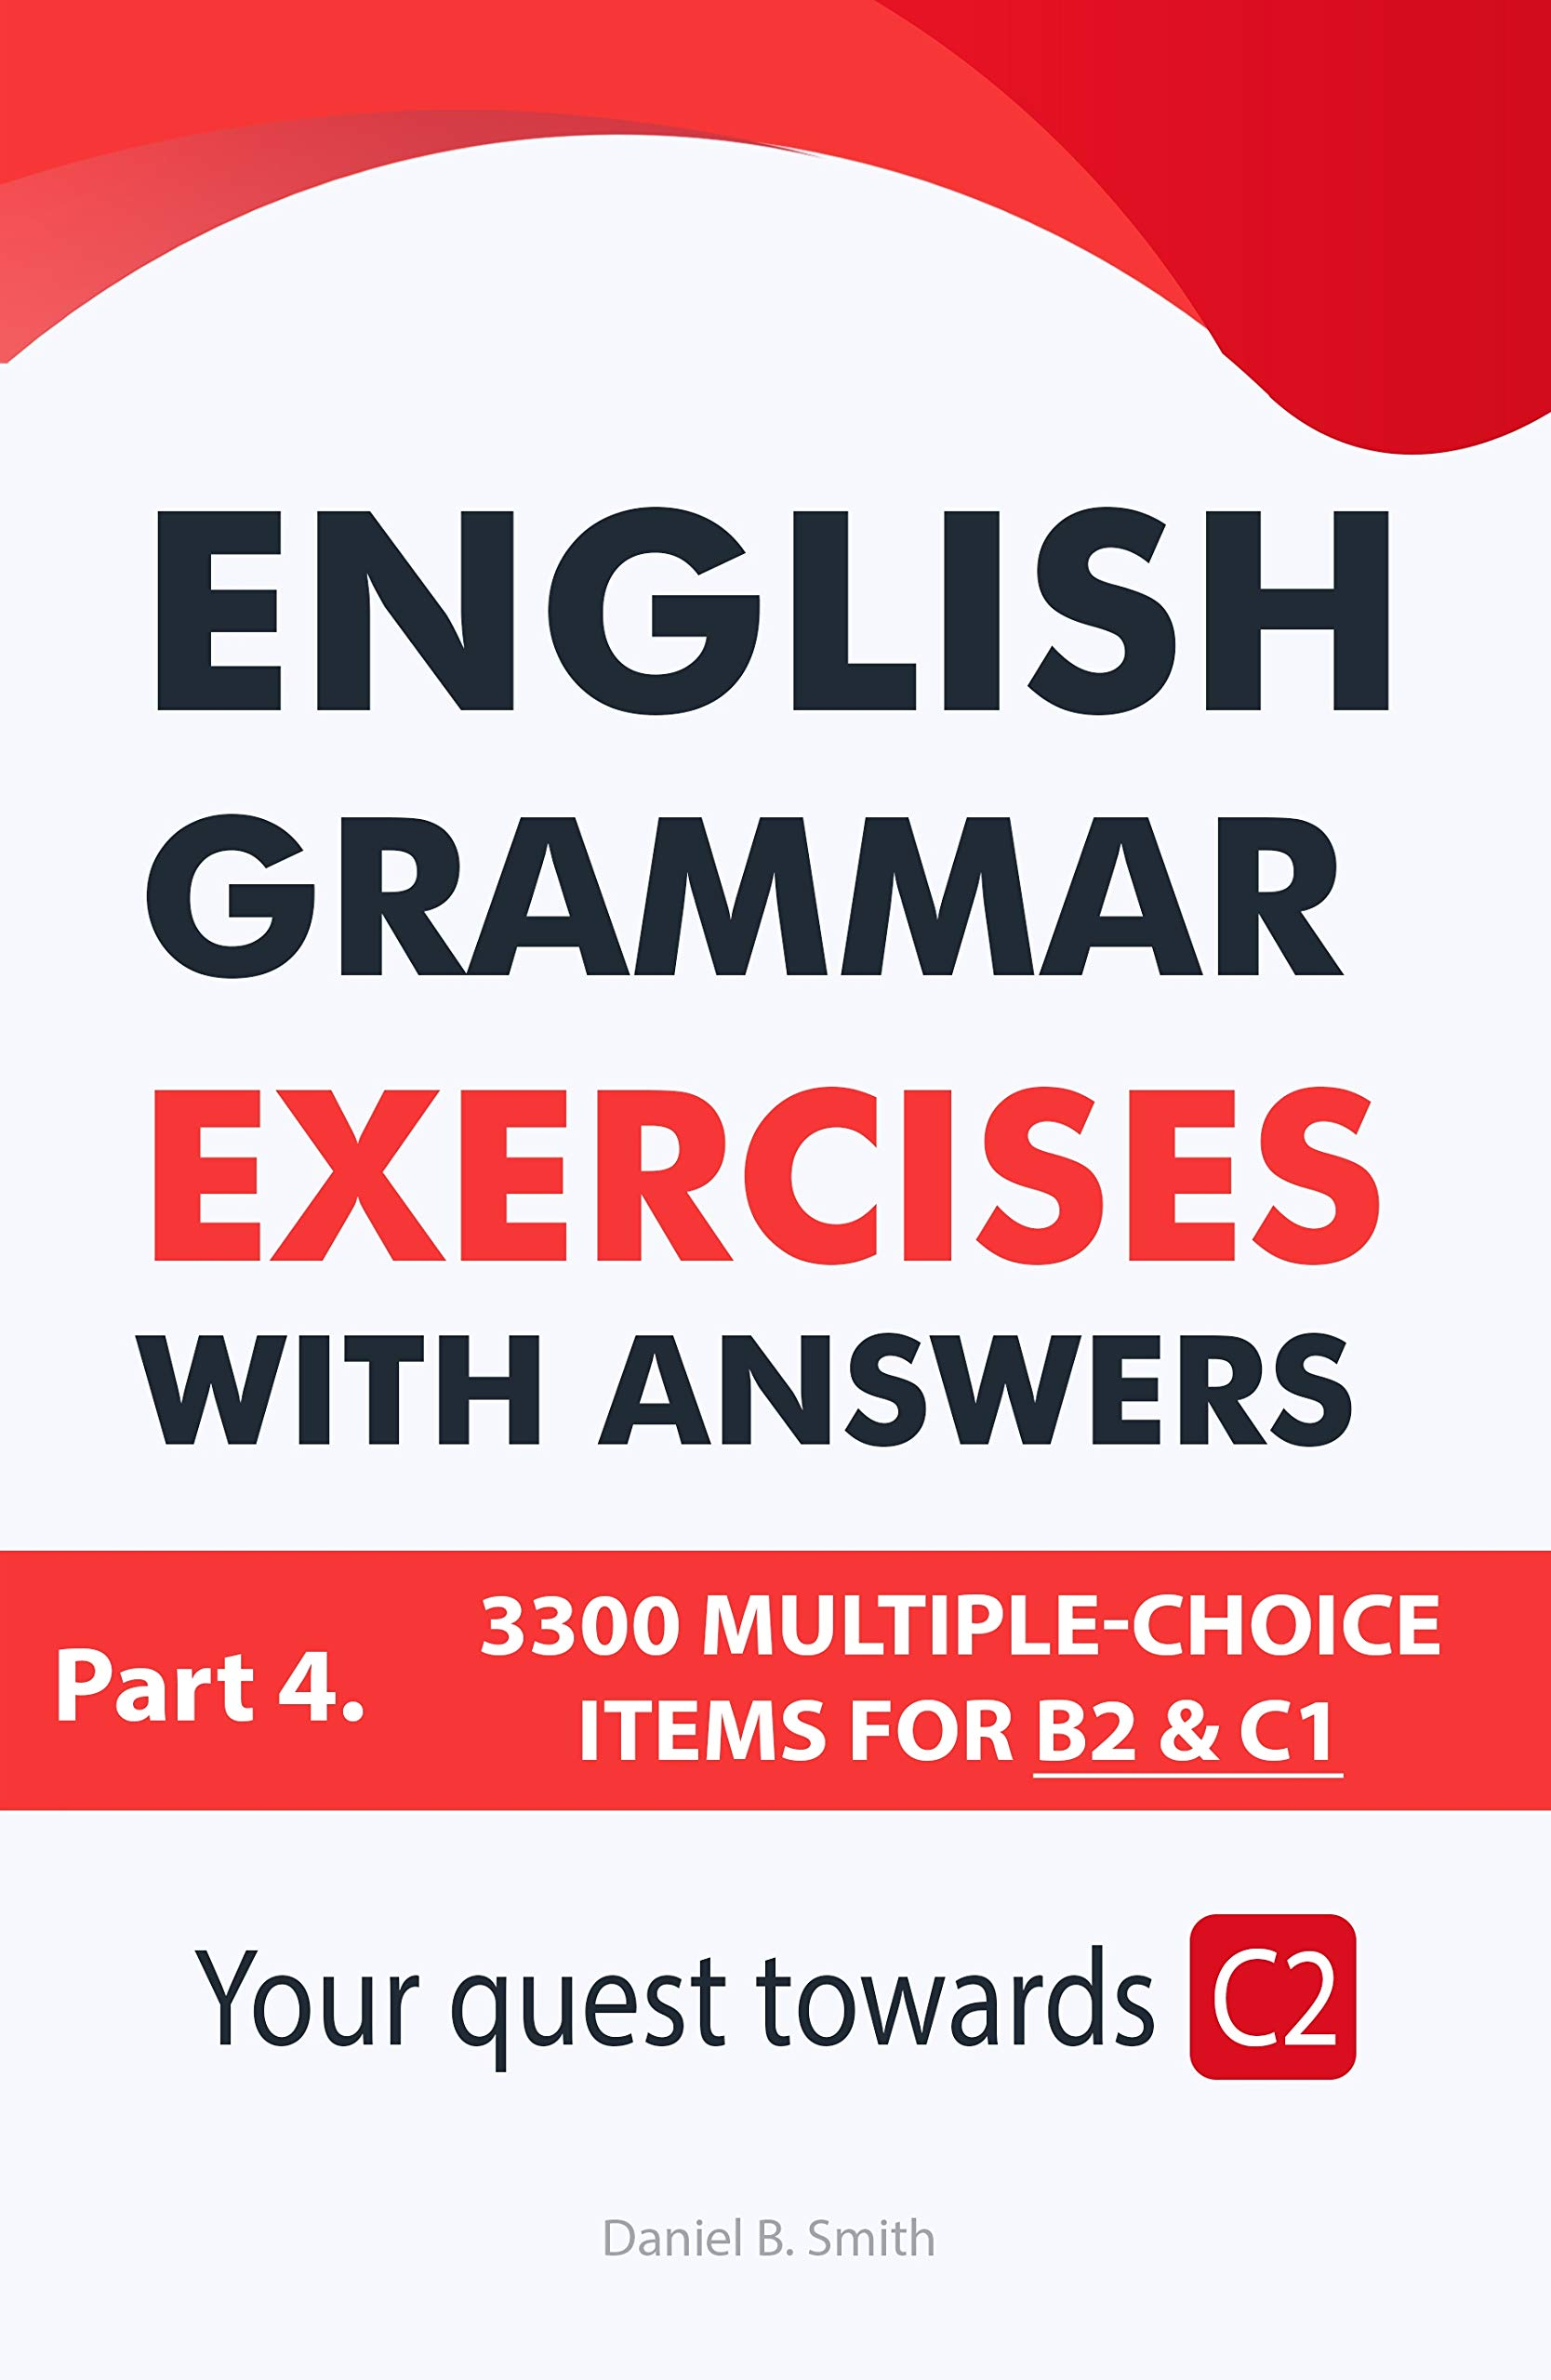 English Grammar Exercises with answers Part 4  Your quest towards C2